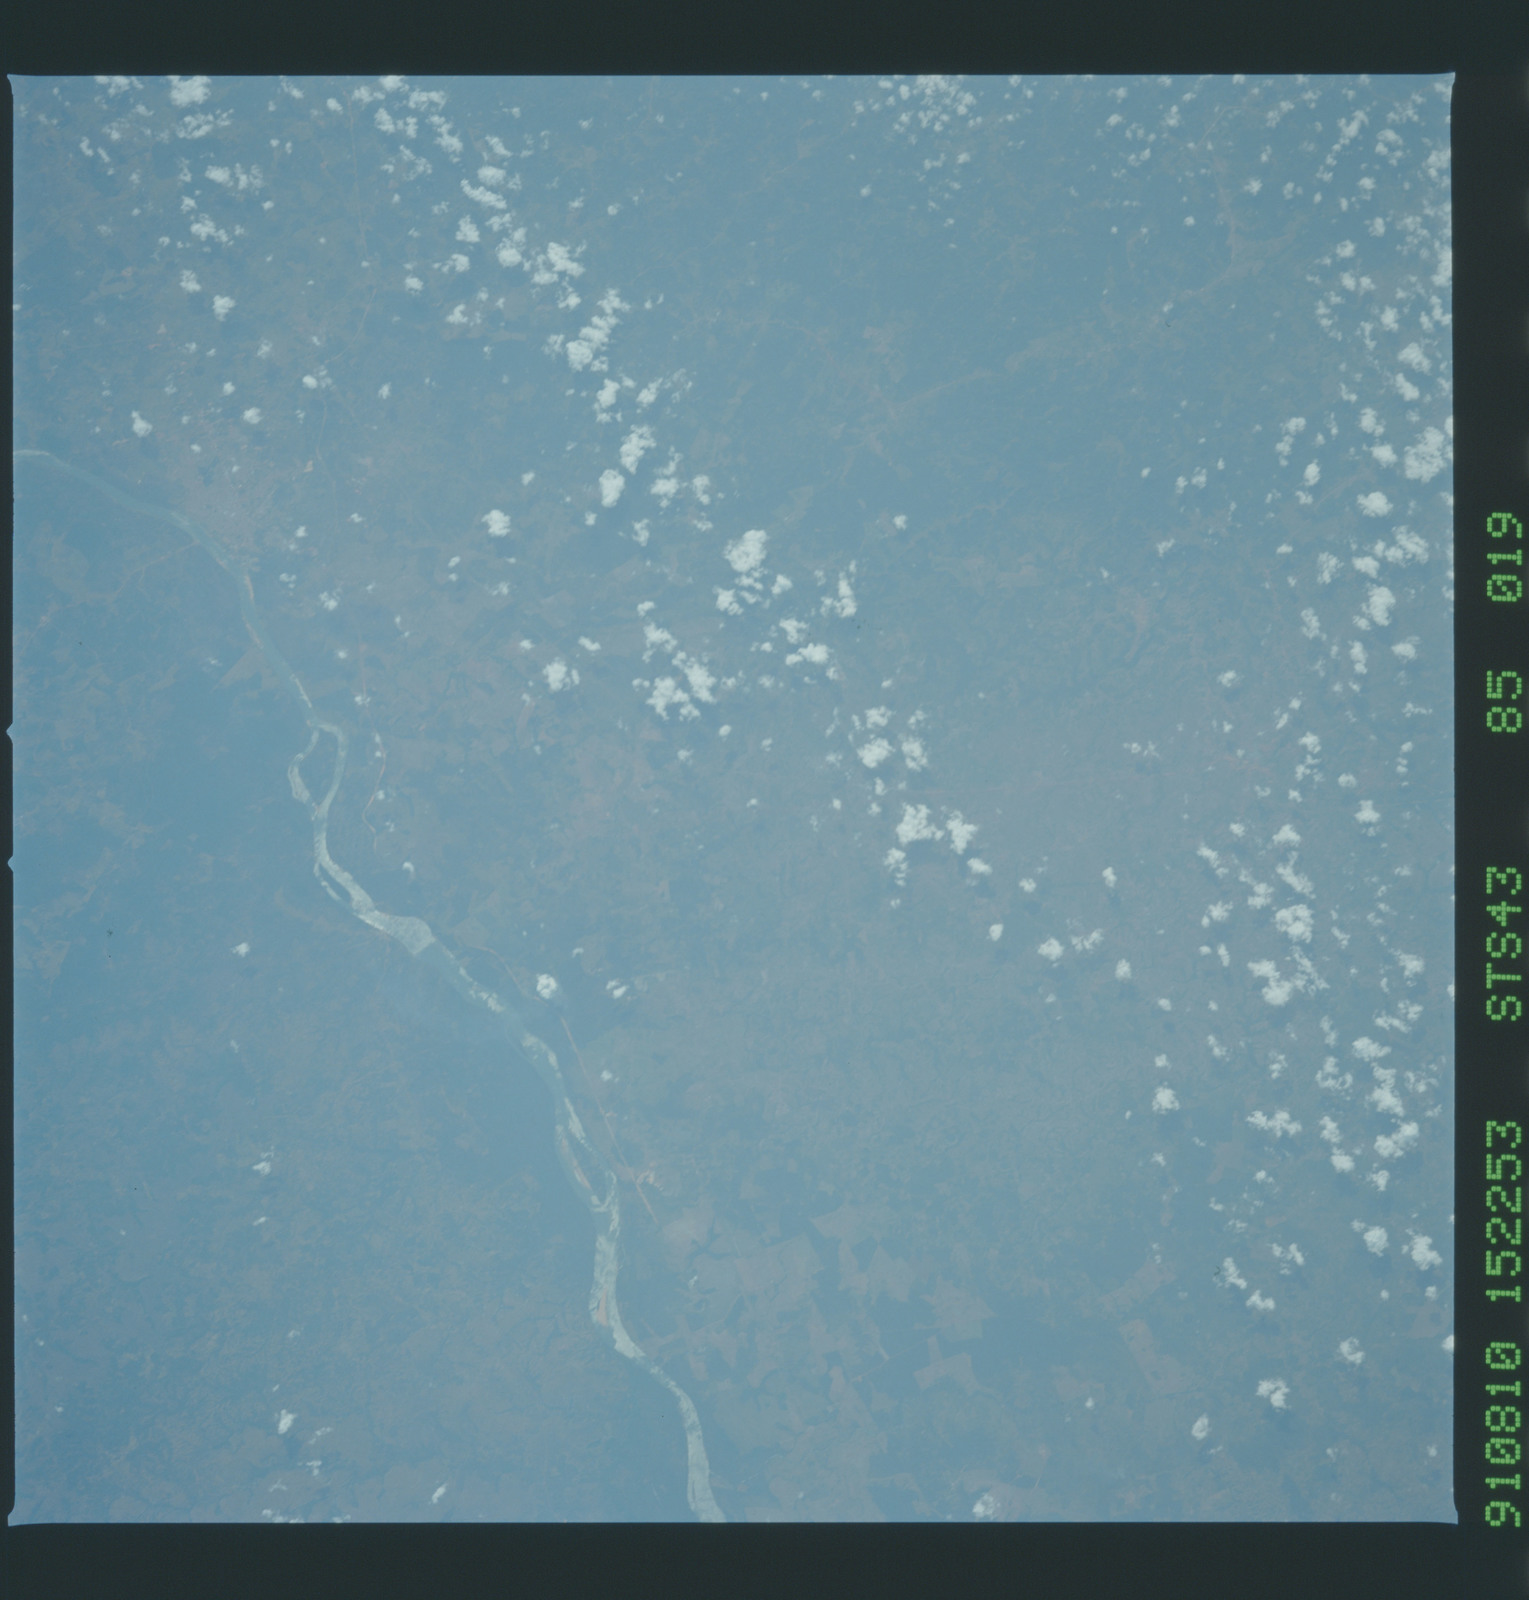 S43-85-019 - STS-043 - STS-43 earth observations